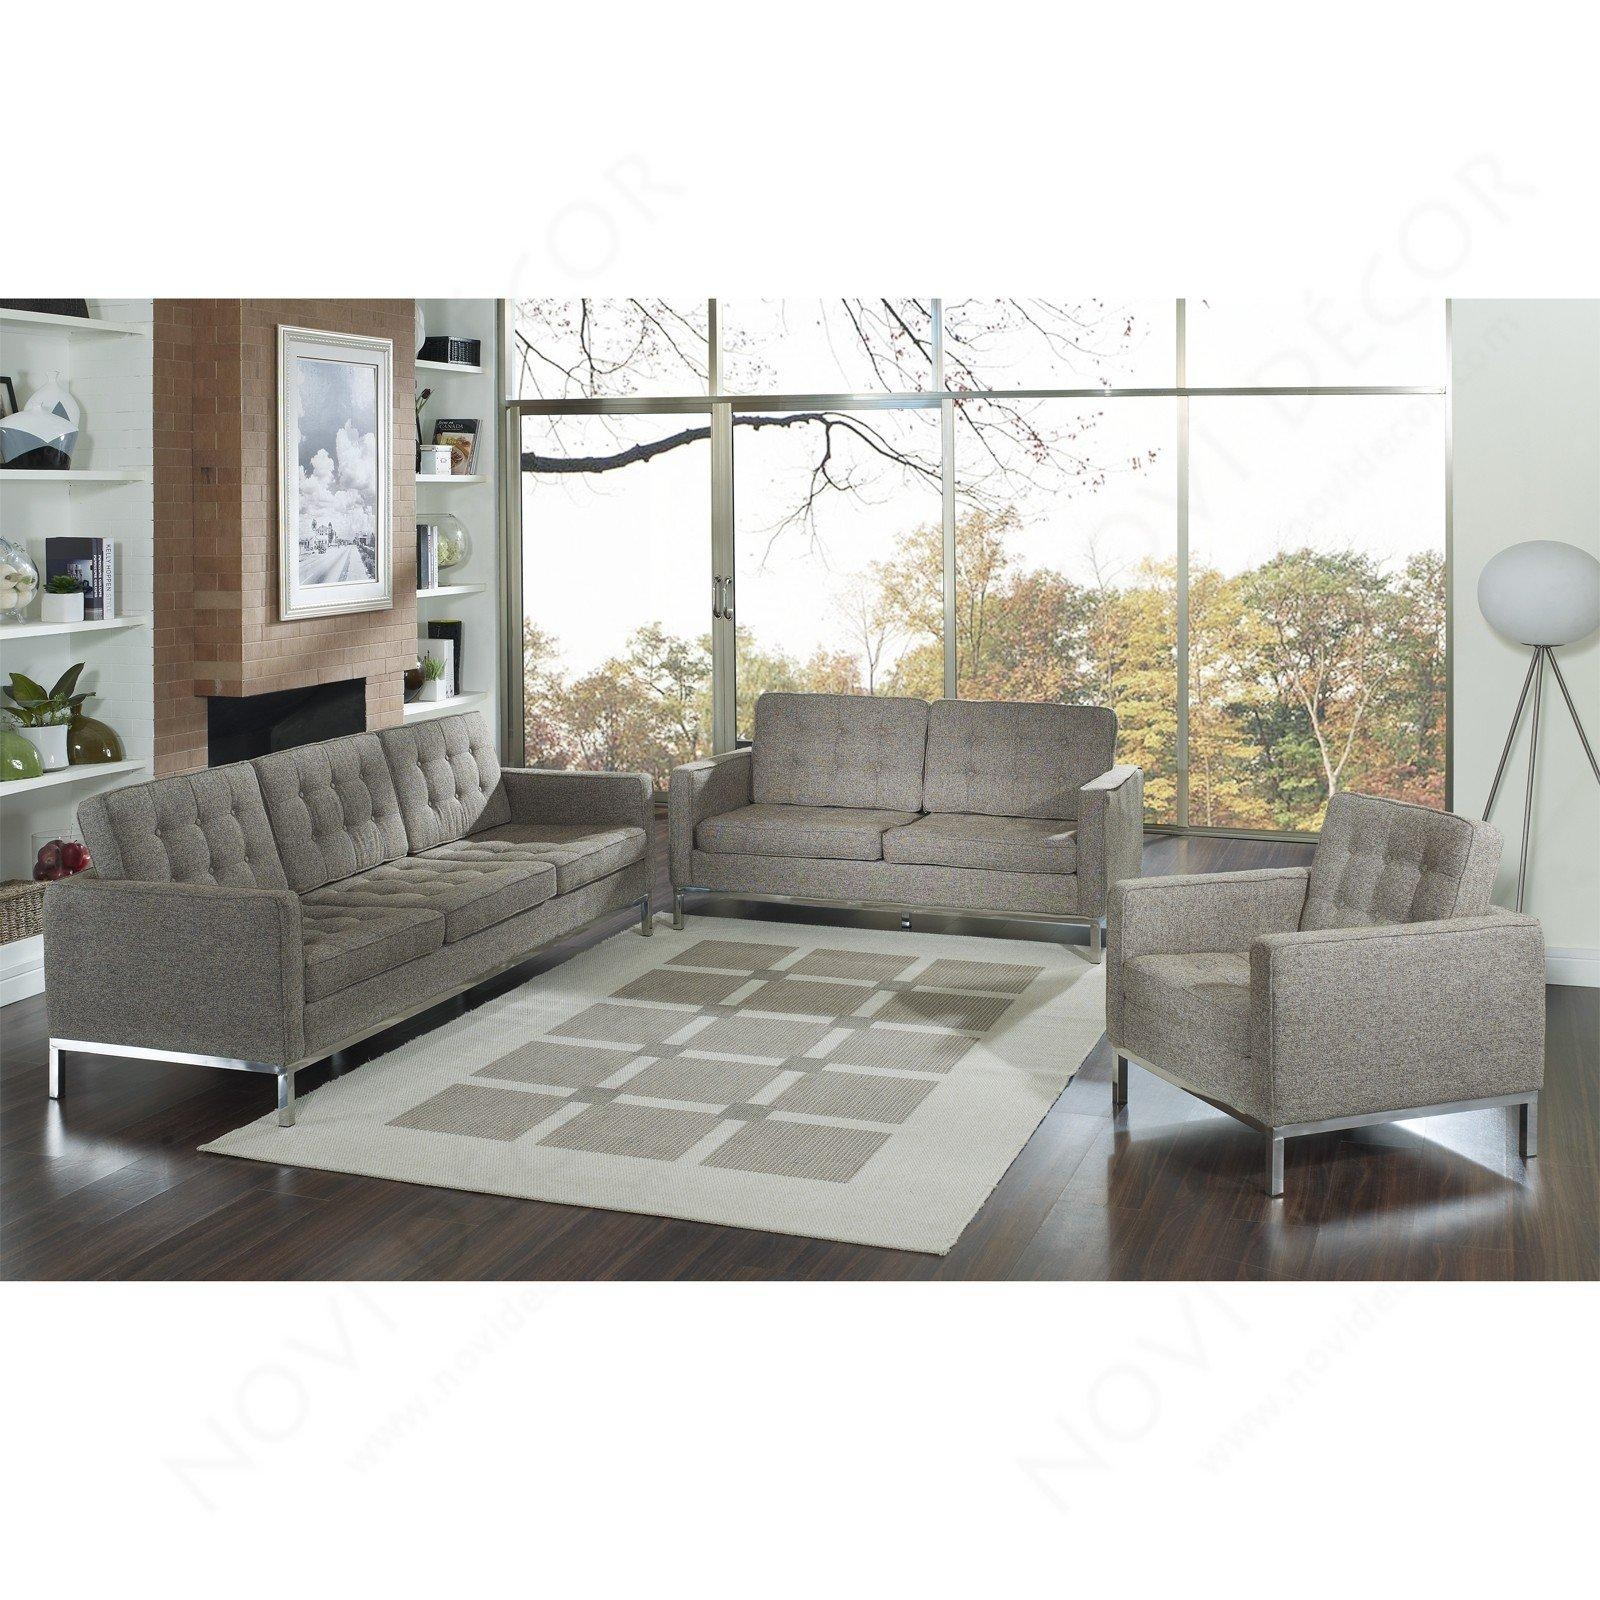 Florence Style Sofa In Wool (Multiple Colors) | Designer Reproduction Within Florence Sofa Beds (Image 9 of 20)